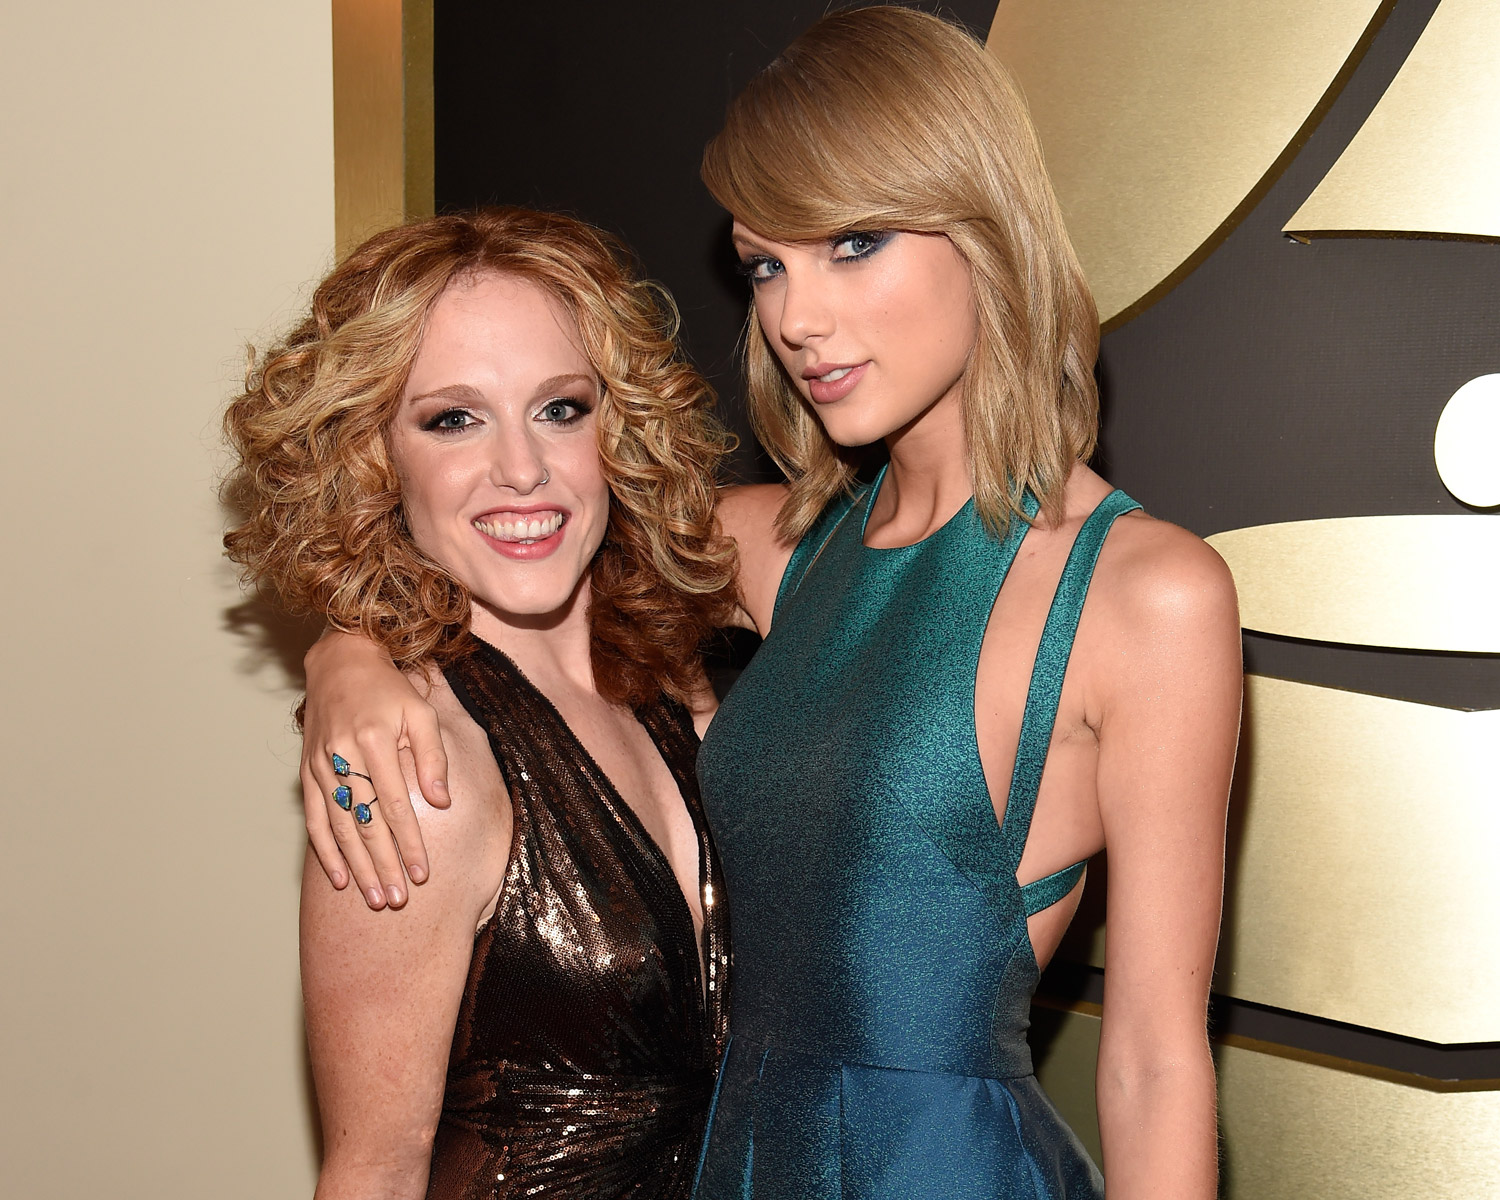 Taylor Swift Throws Bff Abigail Anderson An Engagement Party